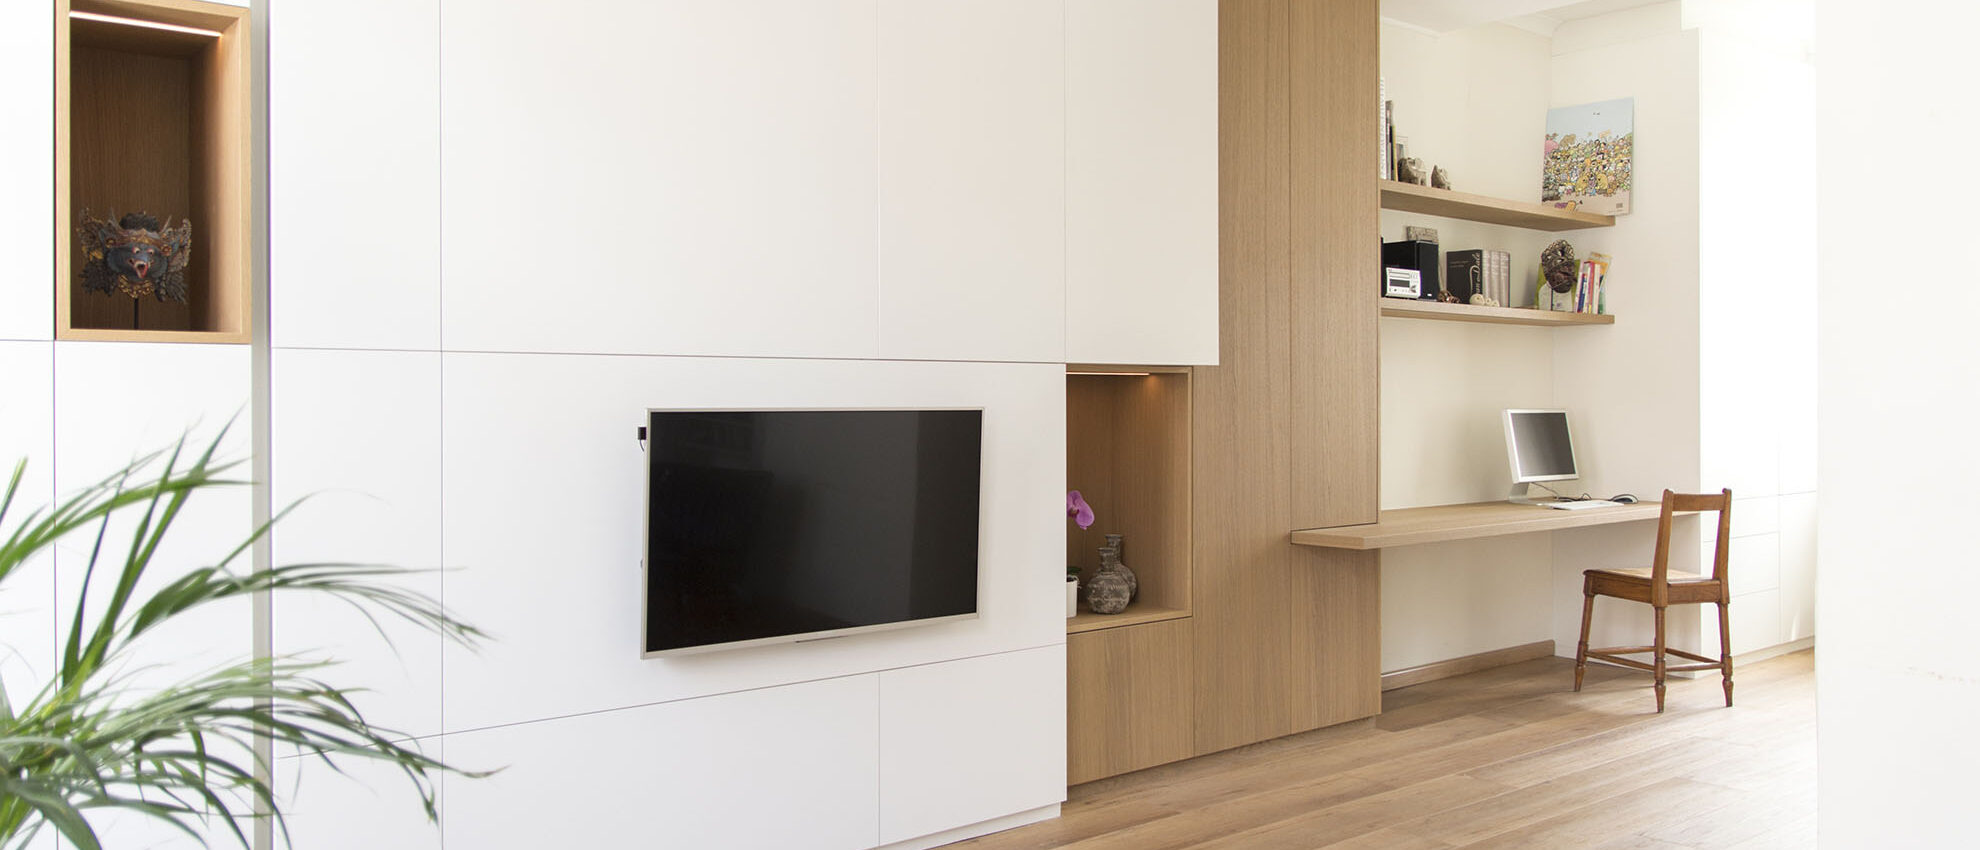 Hus Interieur - Portfolio - Project Brussel - Woonkamer